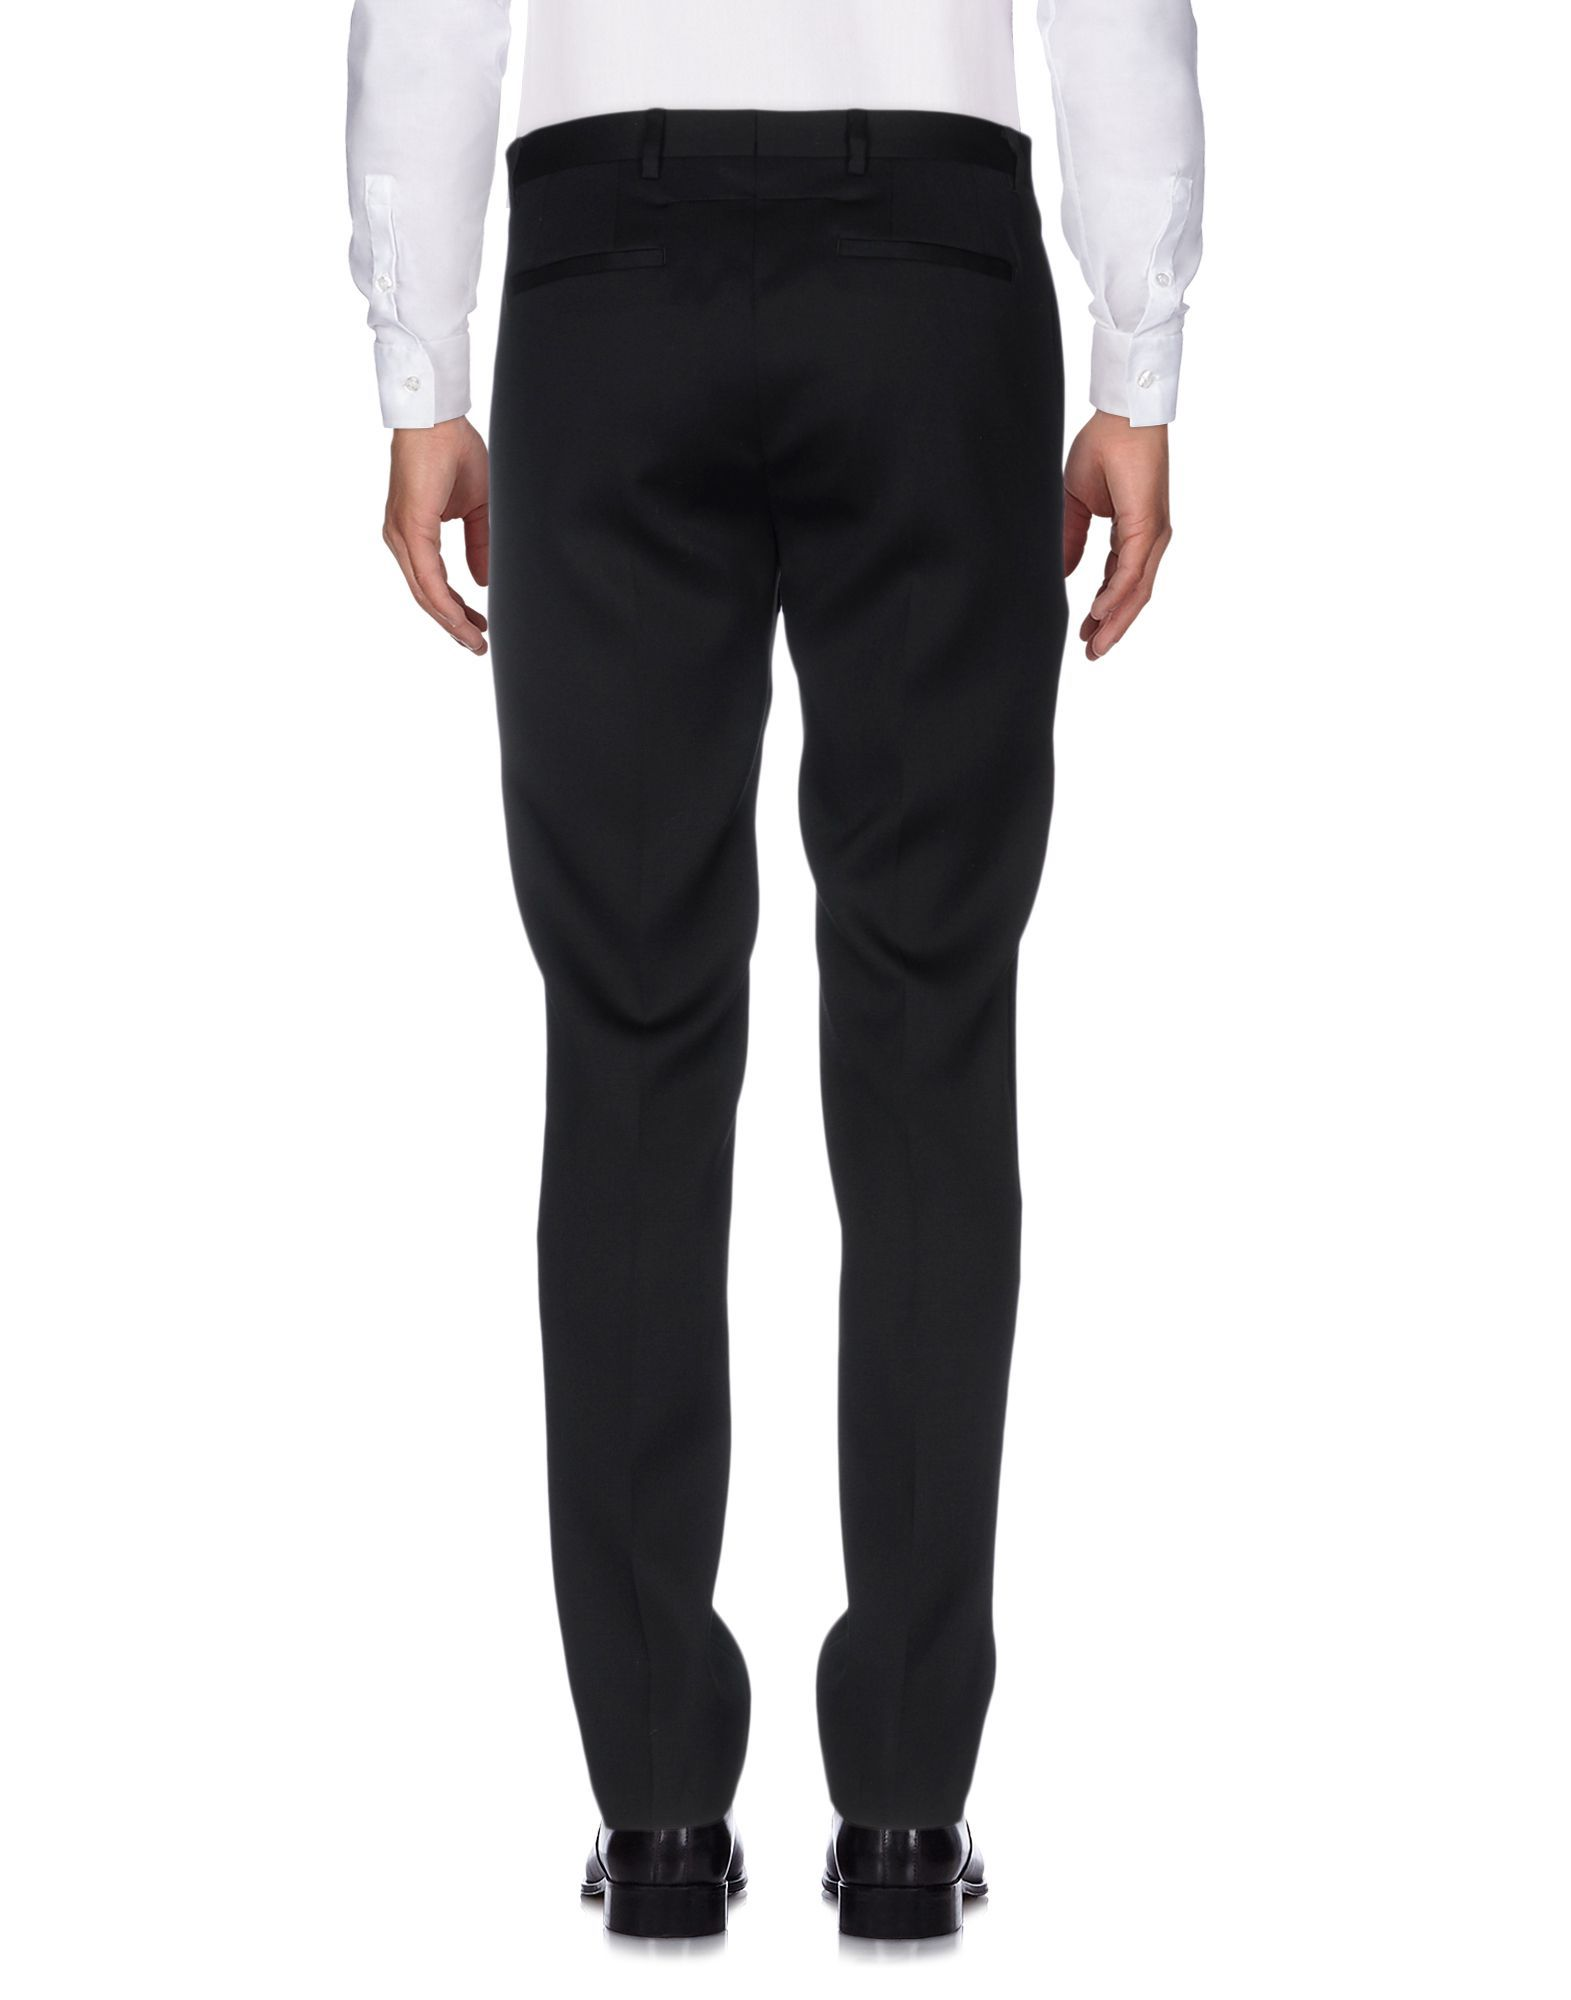 Givenchy Black Wool Tailored Trousers